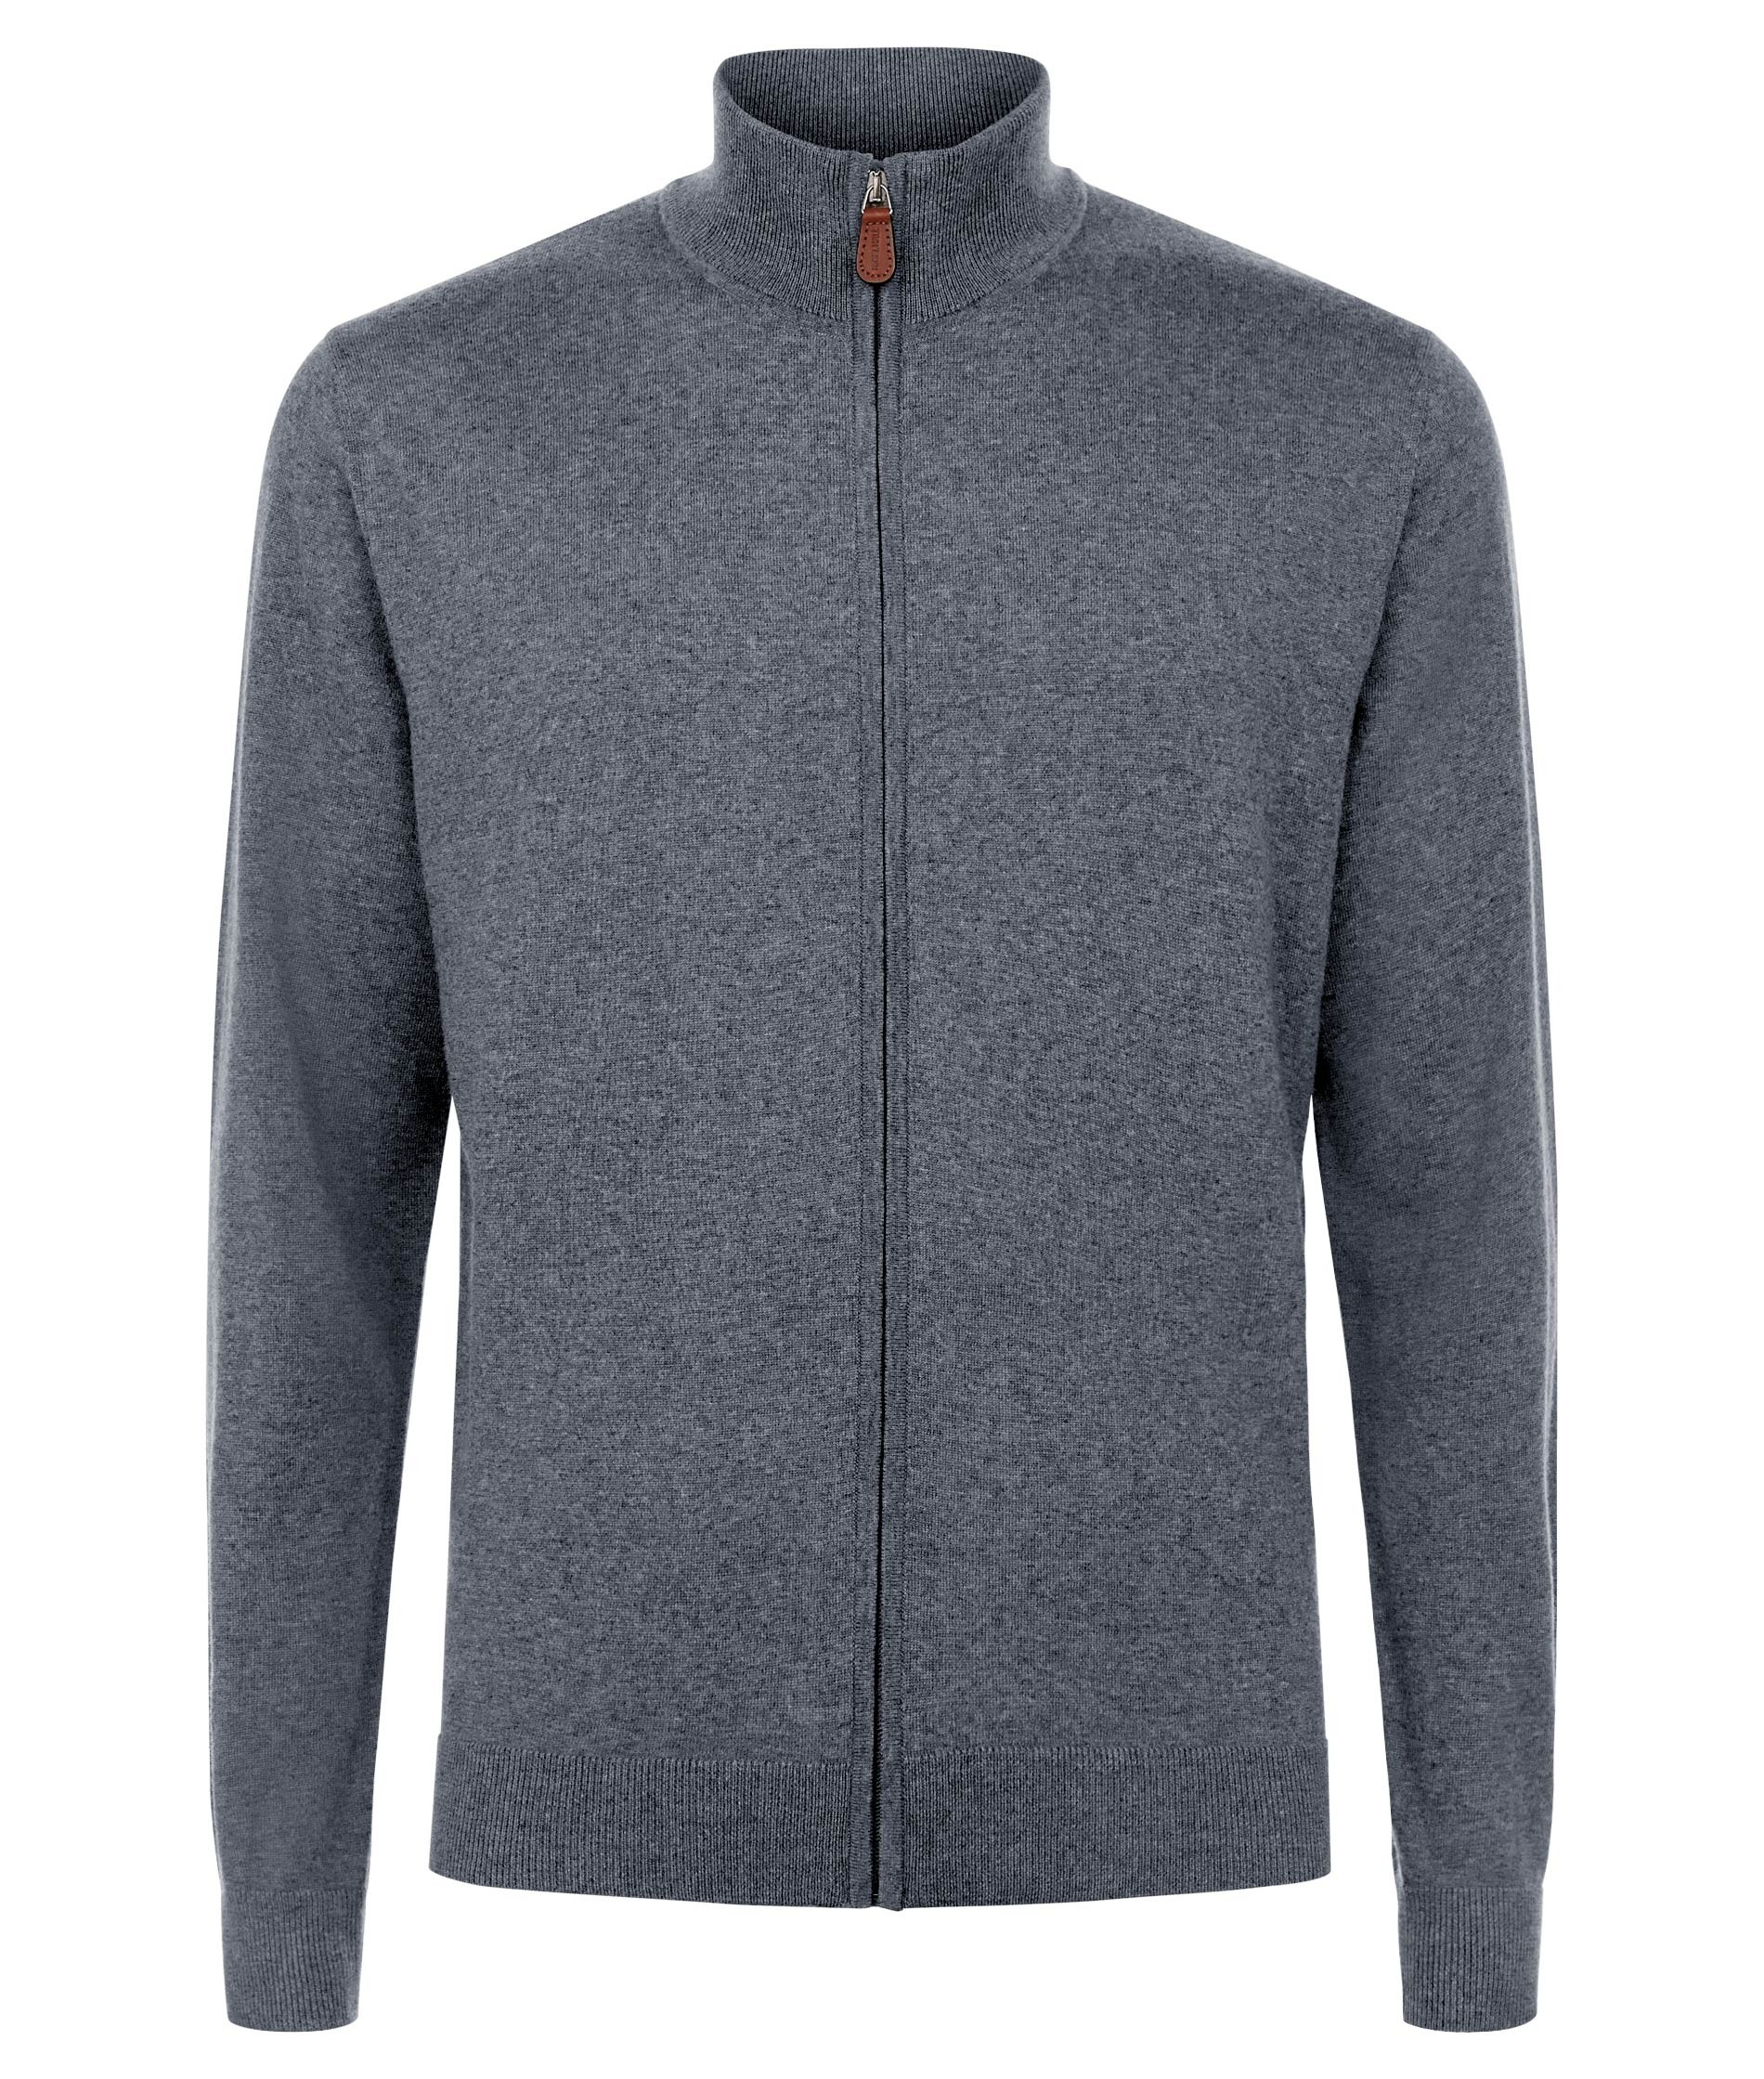 Nigel Hall Grey Merino Wool Zip Through Cardigan - Rufus